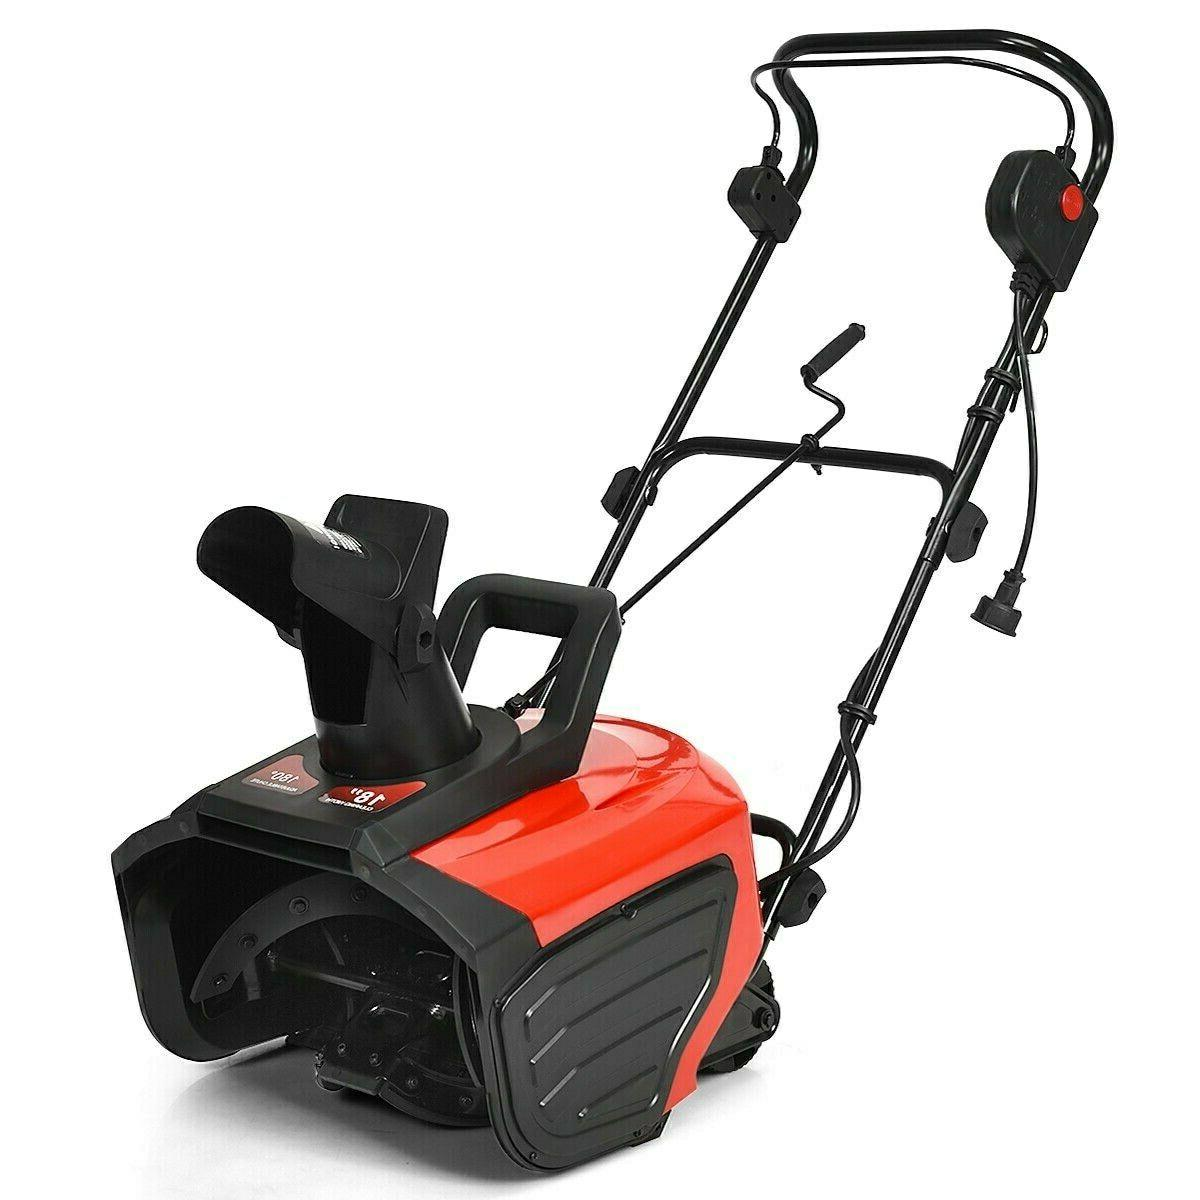 18 15 amp electric snow thrower corded